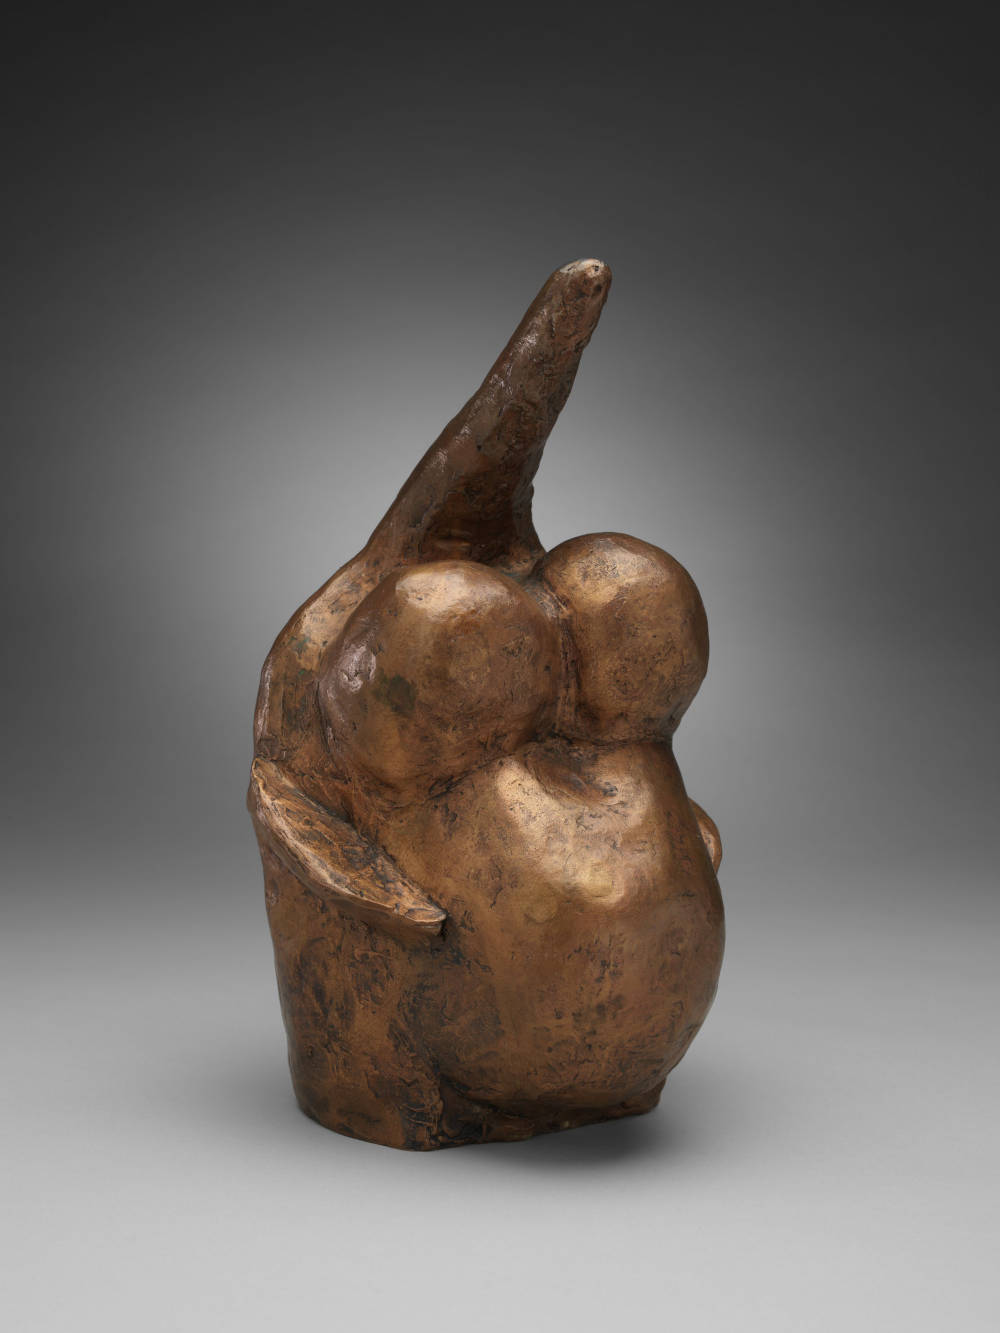 Louise Bourgeois, Fragile Goddess, 1970. Bronze, gold patina 26 x 14.3 x 13.7 cm / 10 1/4 x 5 5/8 x 5 3/8 in © The Easton Foundation / 2019, ProLitteris, Zurich. Courtesy the Foundation and Hauser & Wirth. Photo: Christopher Burke